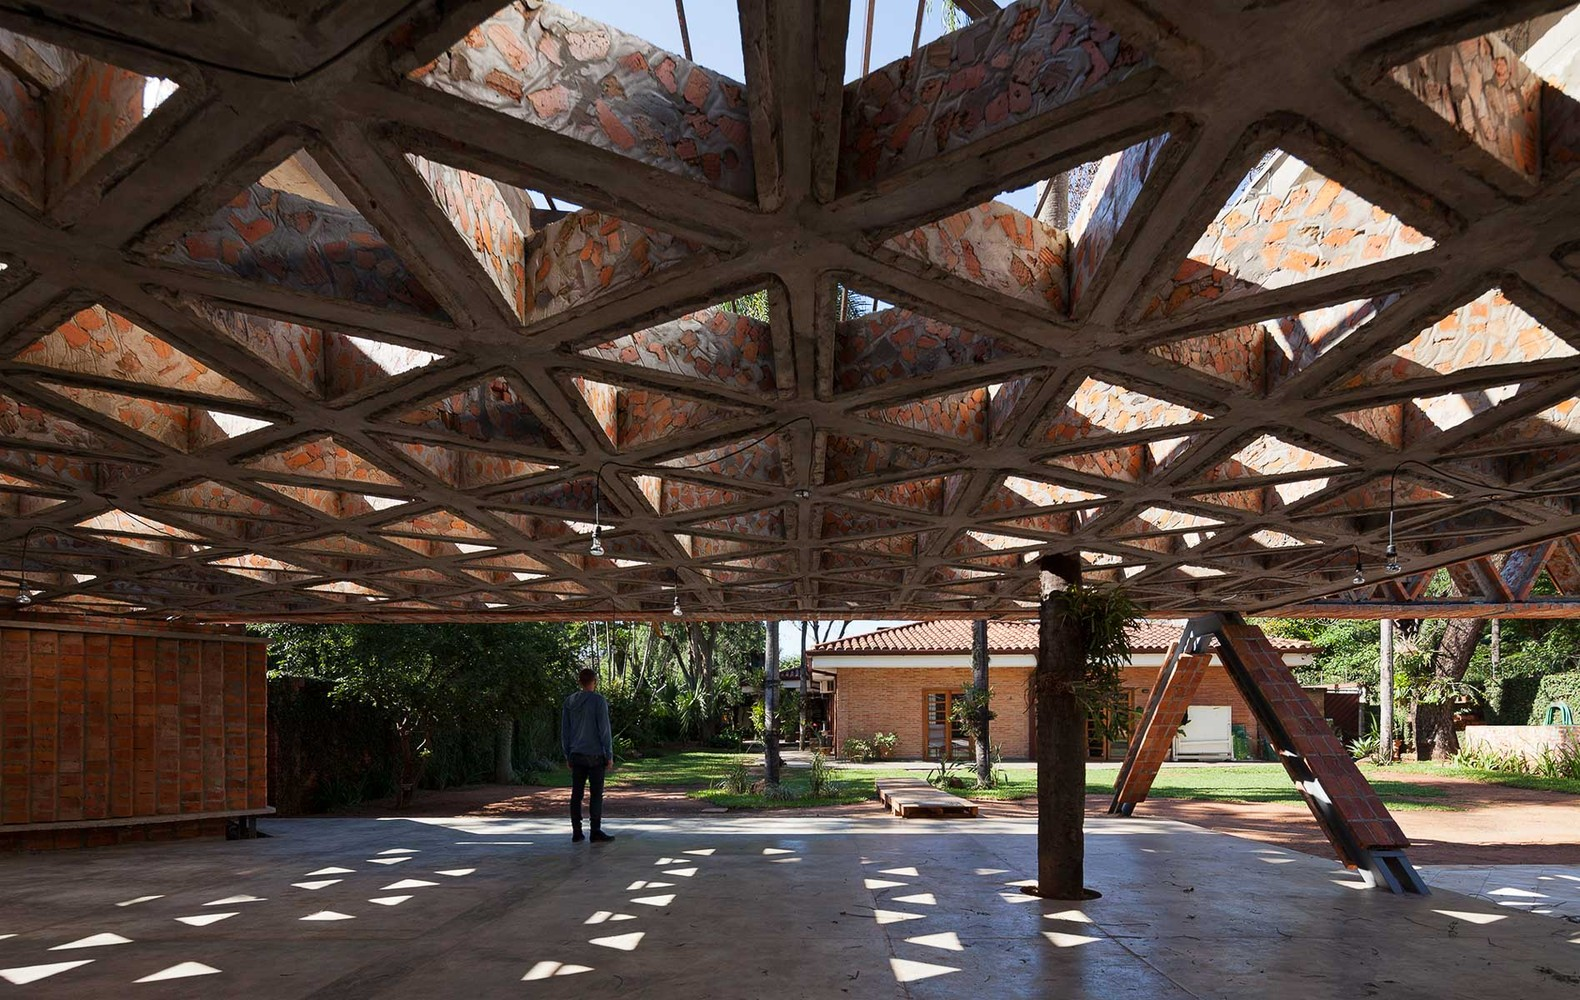 Huge Lattice Canopy Made With Brick And Steel Shelters